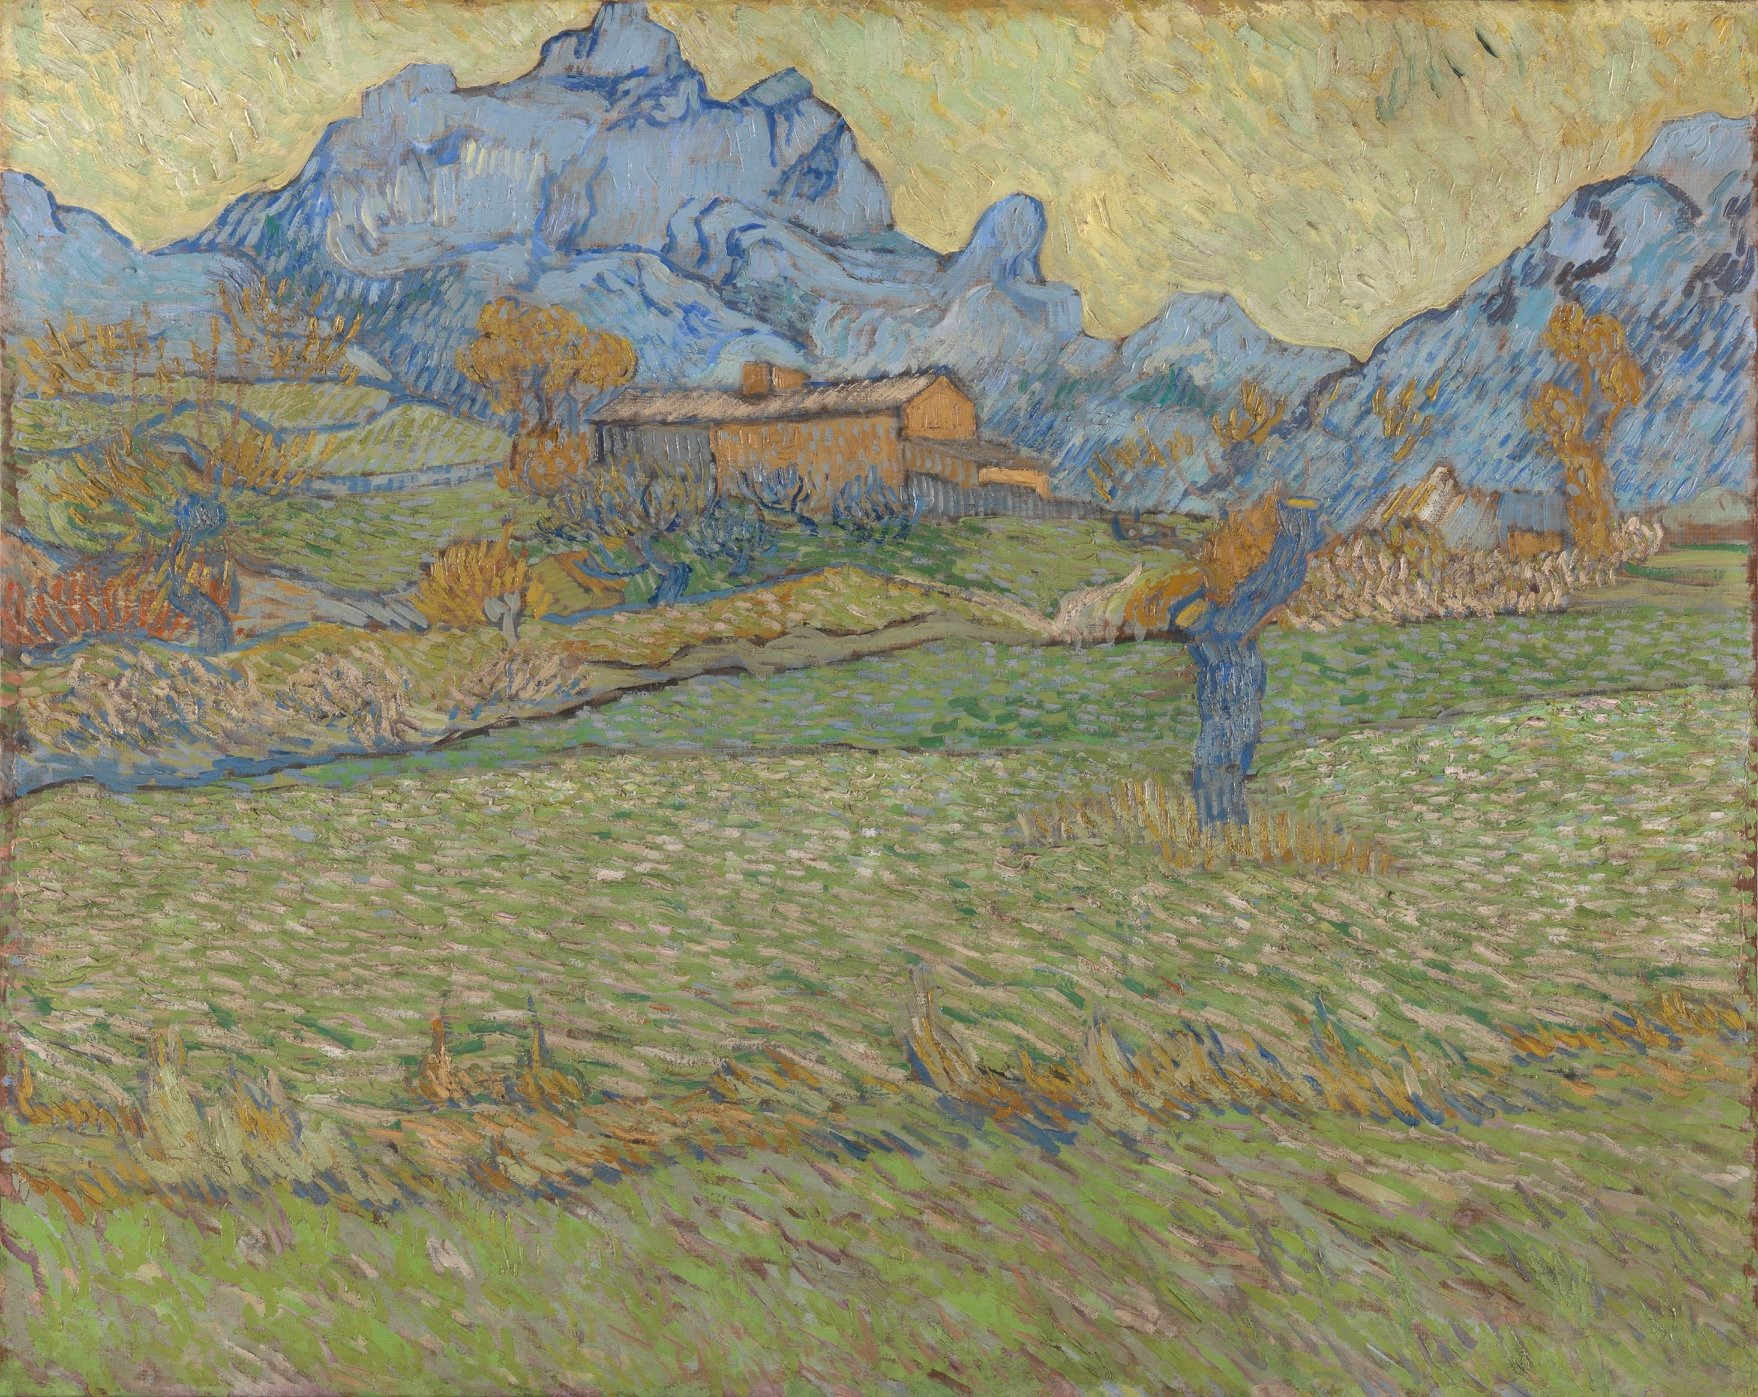 DocART / Van Gogh Of Wheat Fields And Clouded Skies